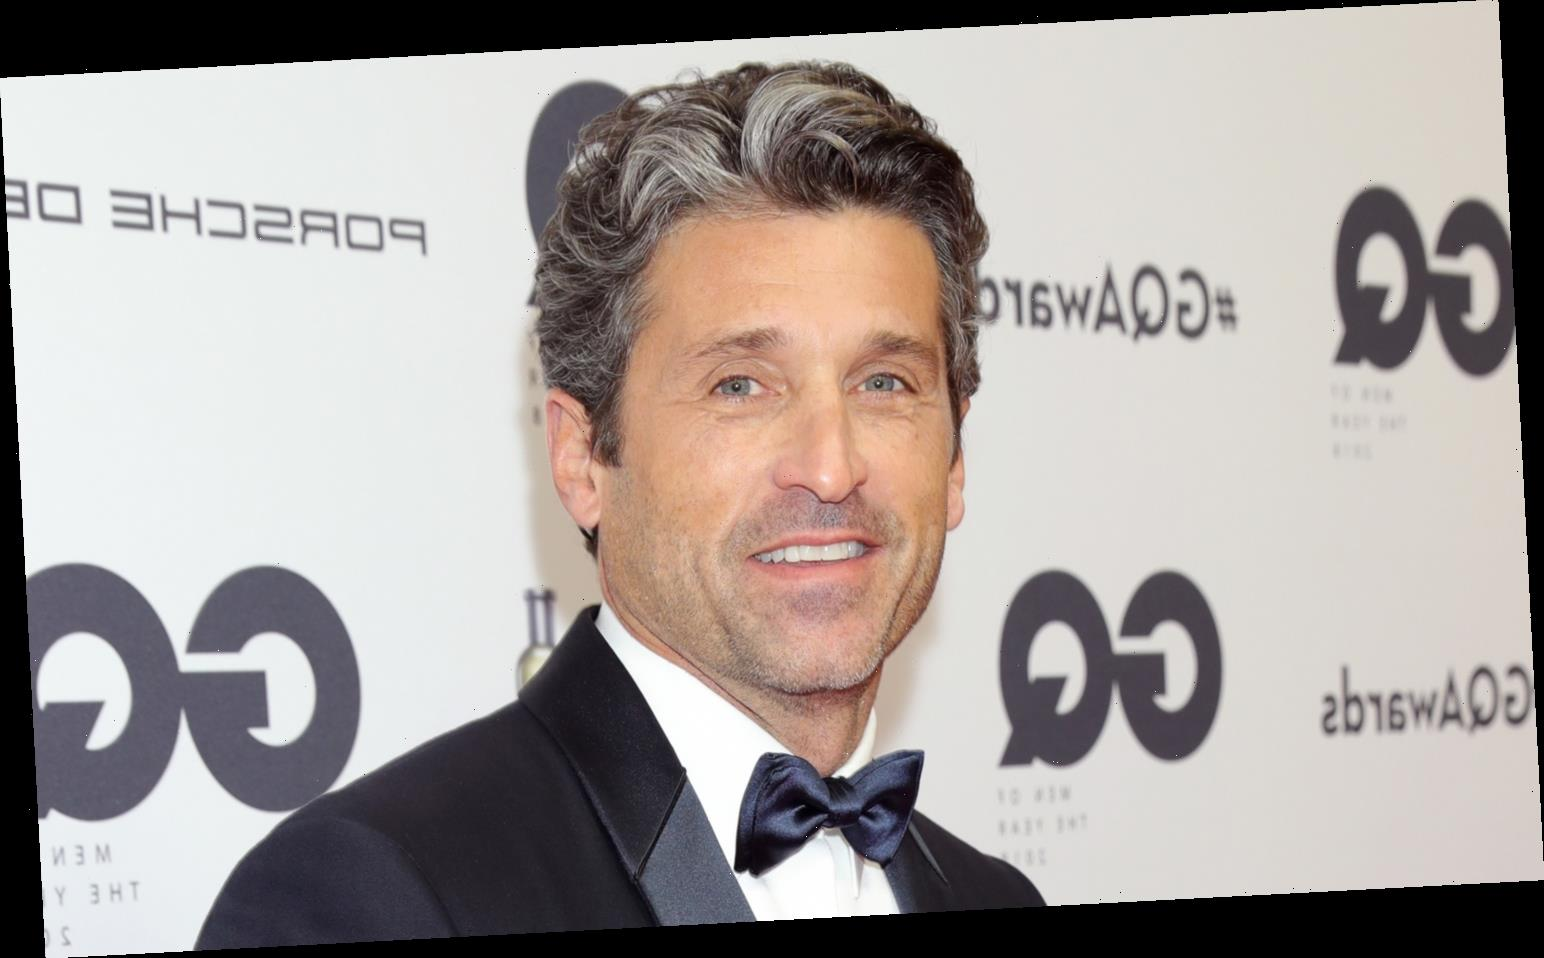 Patrick Dempsey's New Show 'Devils' Gets Picked Up by The CW for Fall 2020